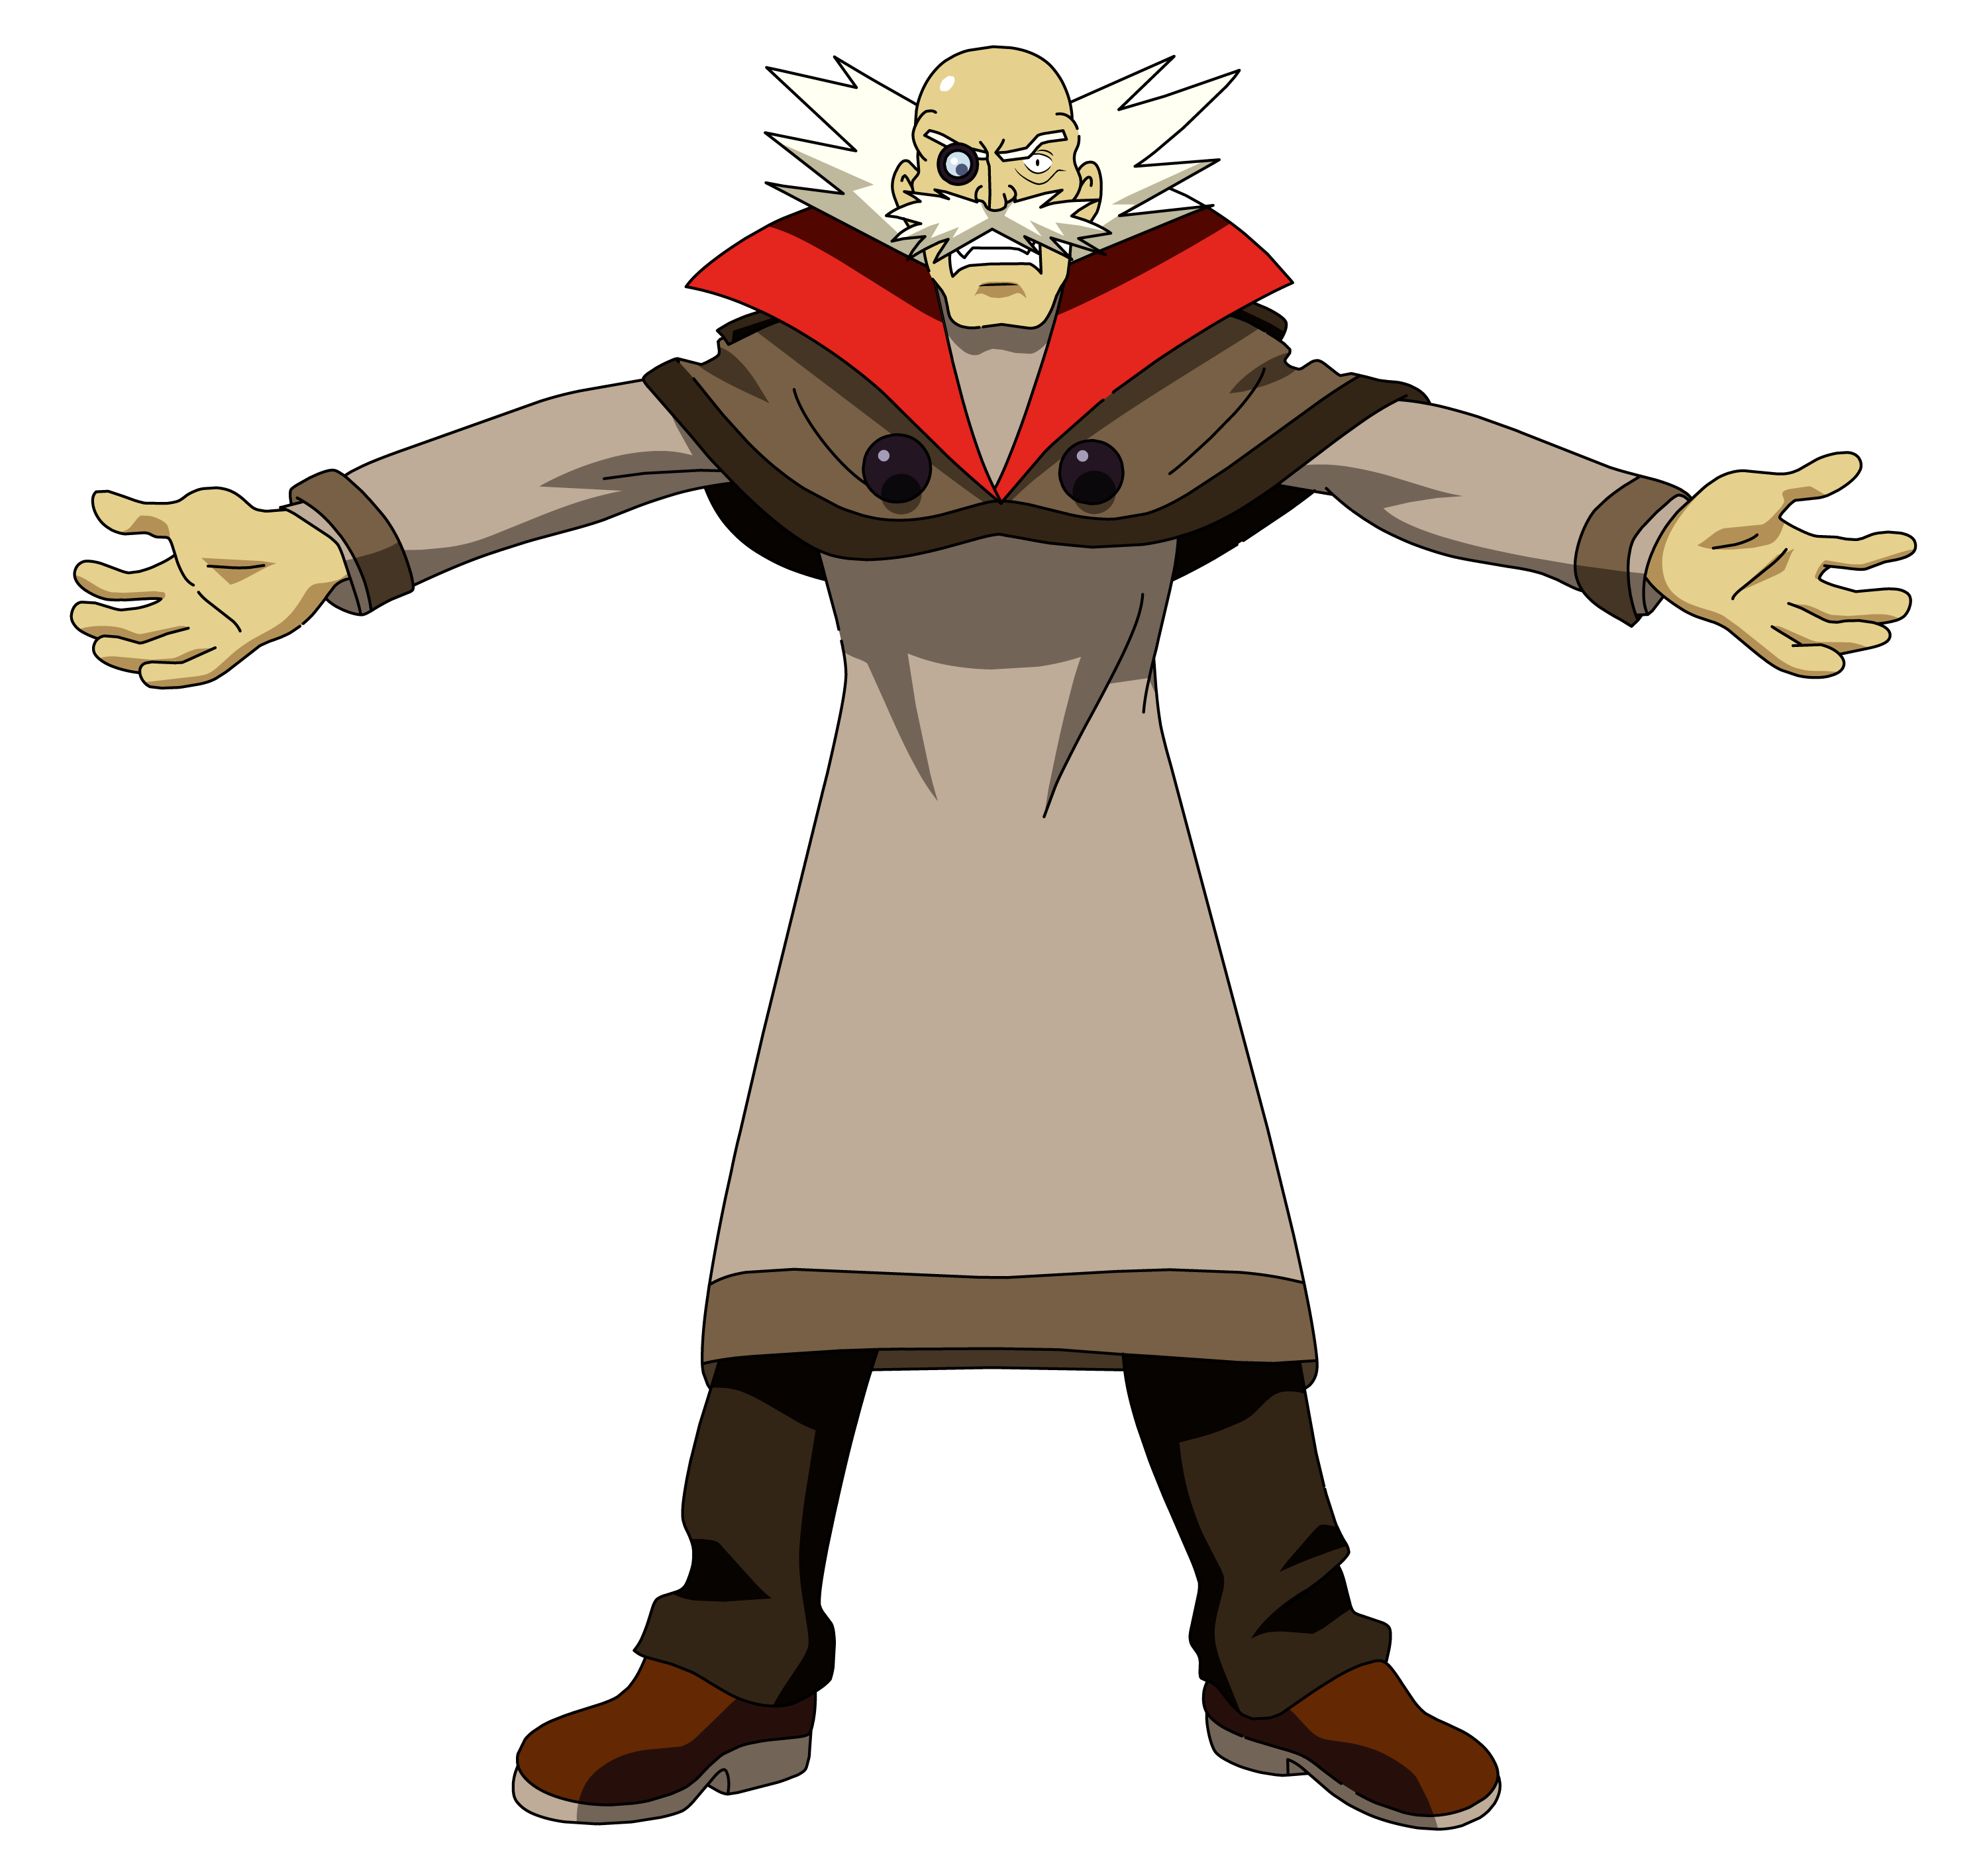 Mr. Wily